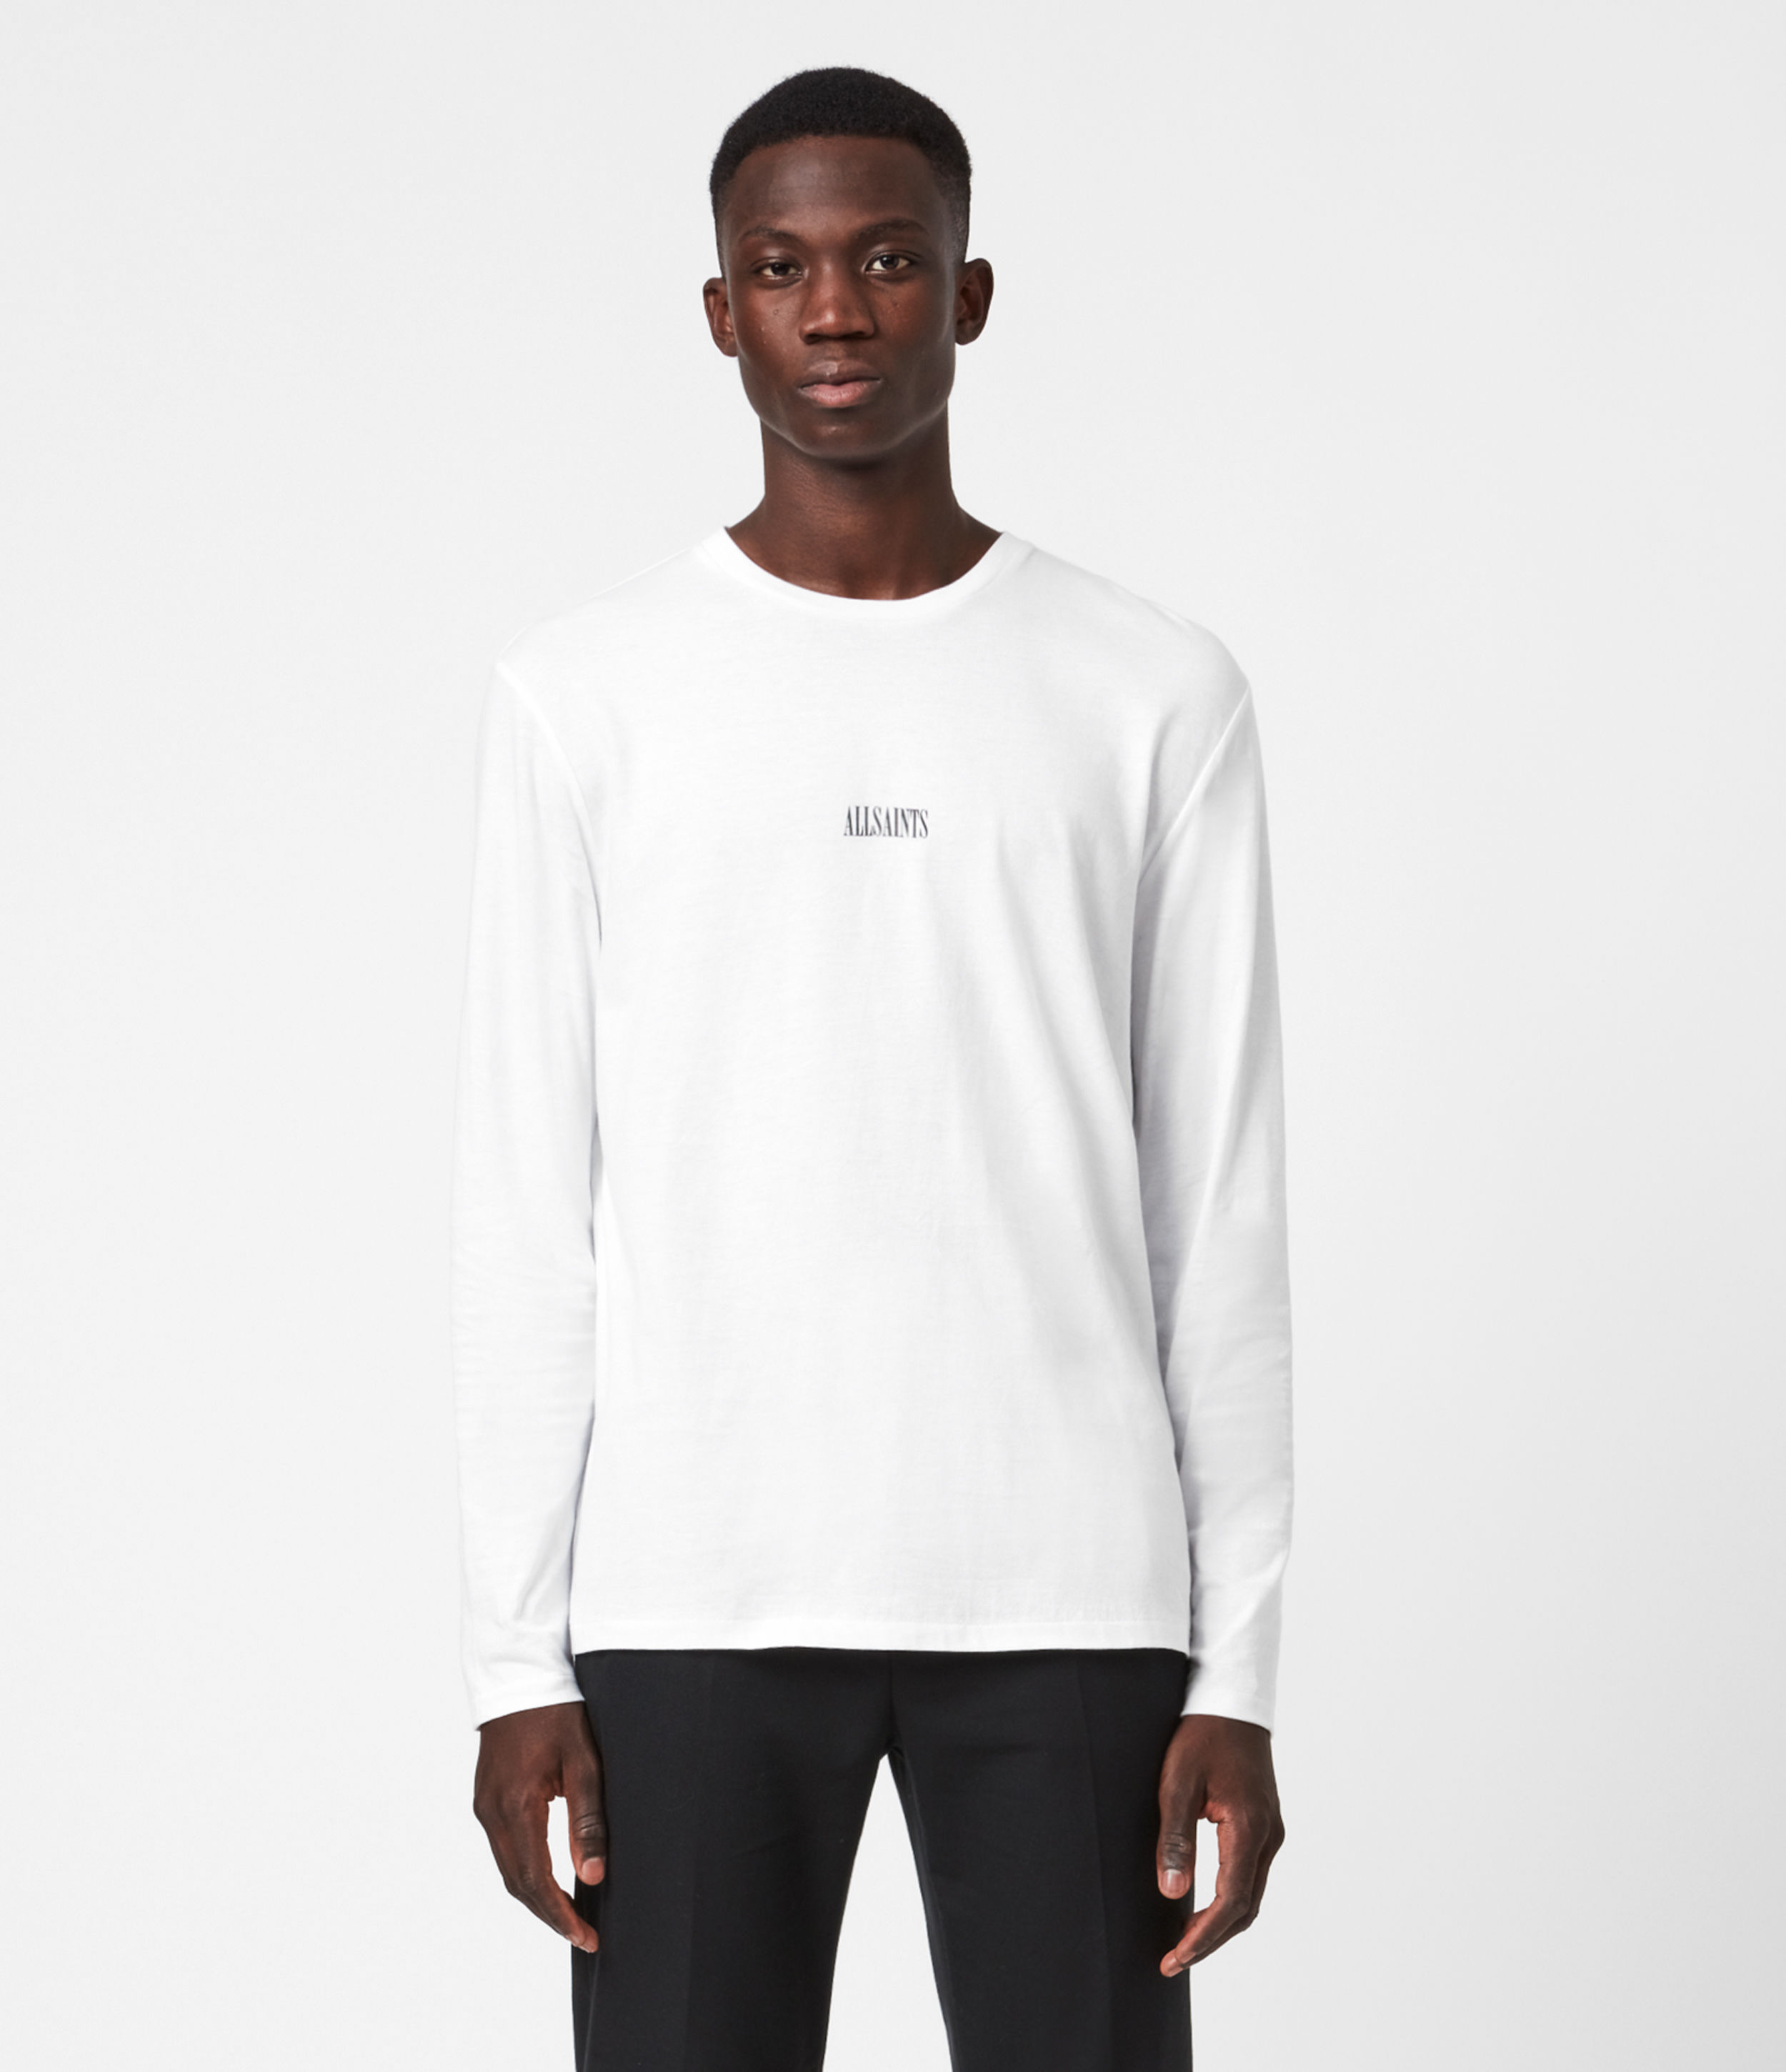 AllSaints Mens State Long Sleeve Crew T-Shirt, Optic White, Size: XS